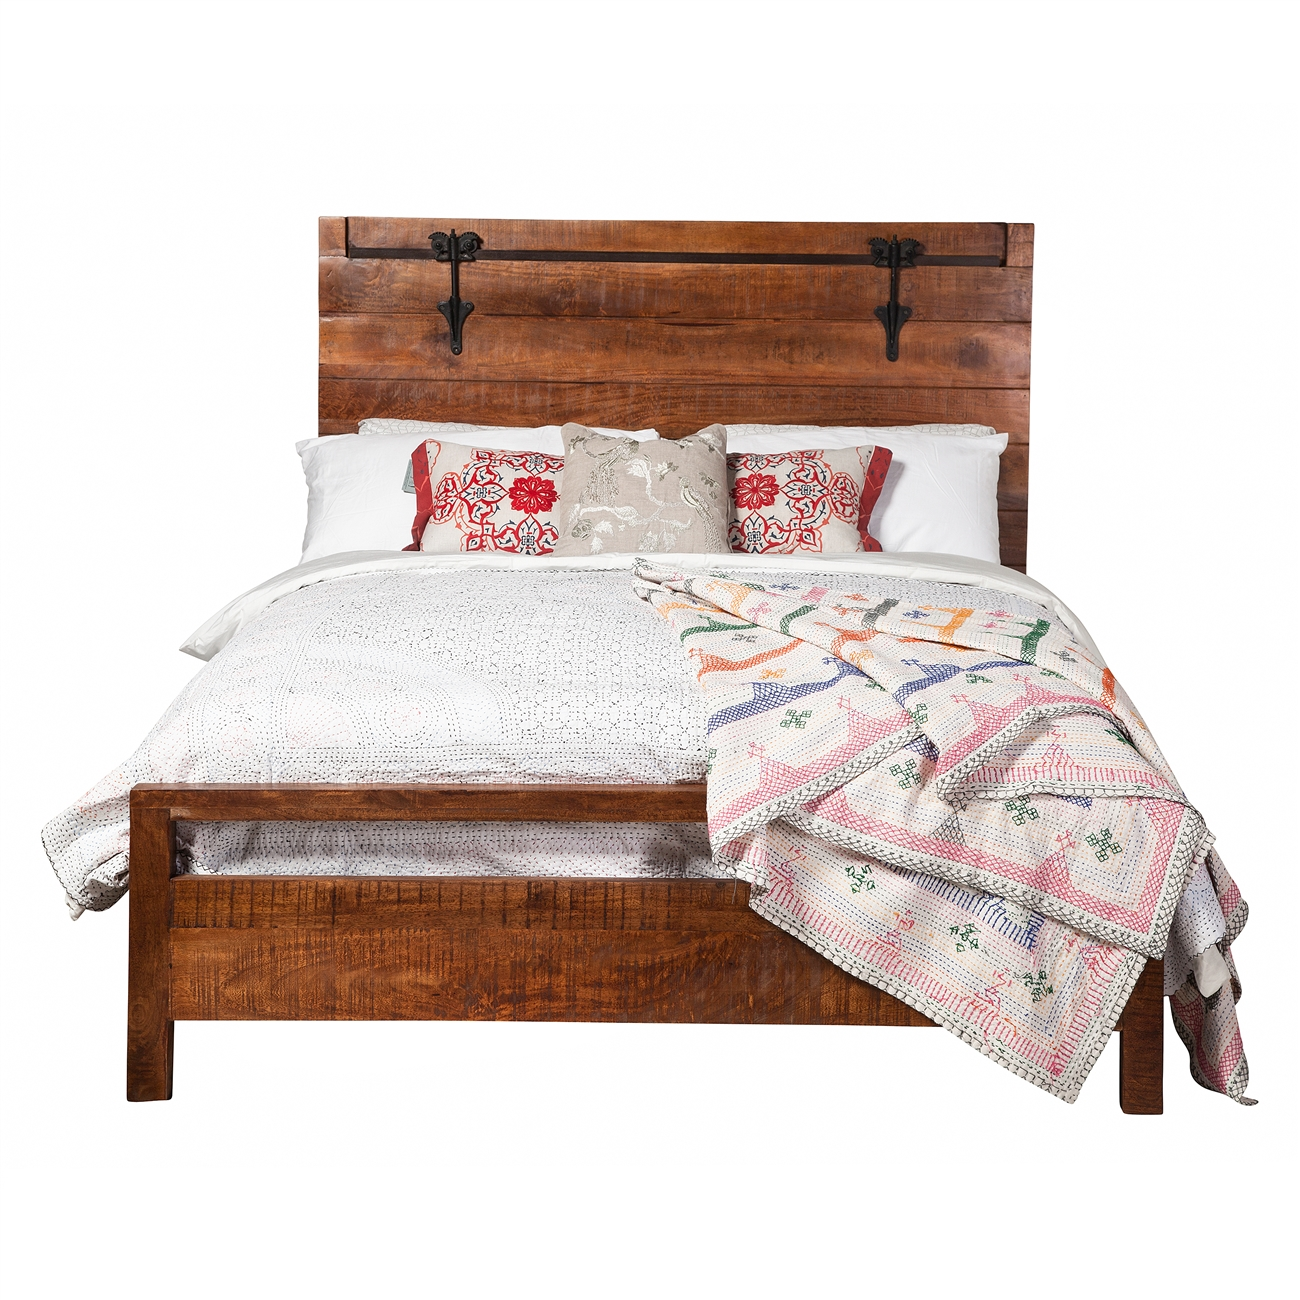 Owen Reclaimed Mango Wood Queen Bed Frame, The Khazana Home Austin ...